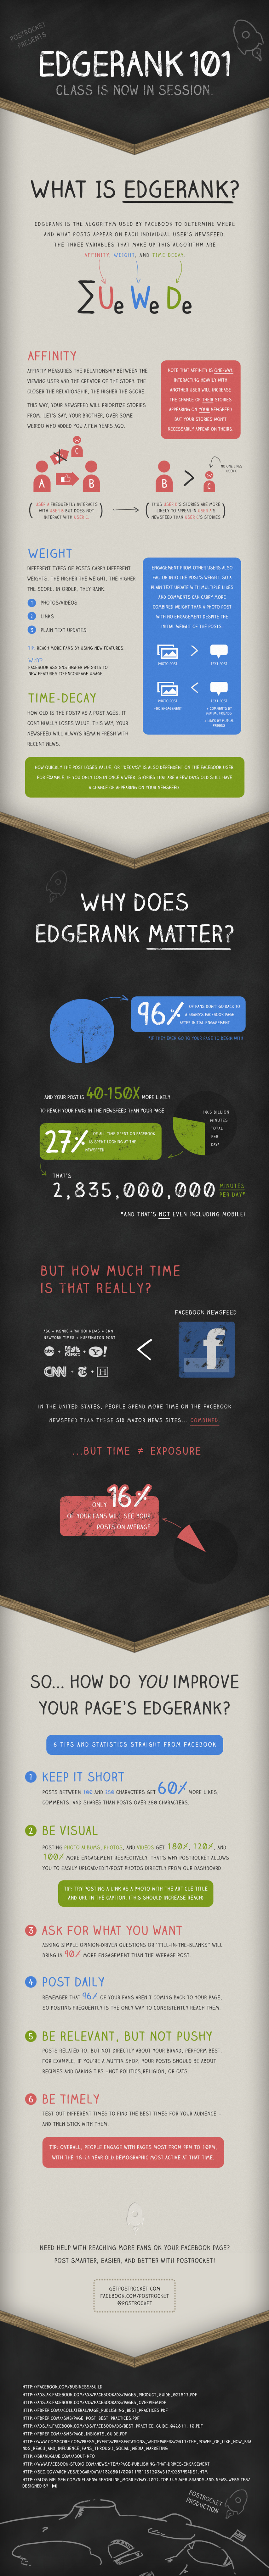 postrocket-facebook-edgerank-infographic1